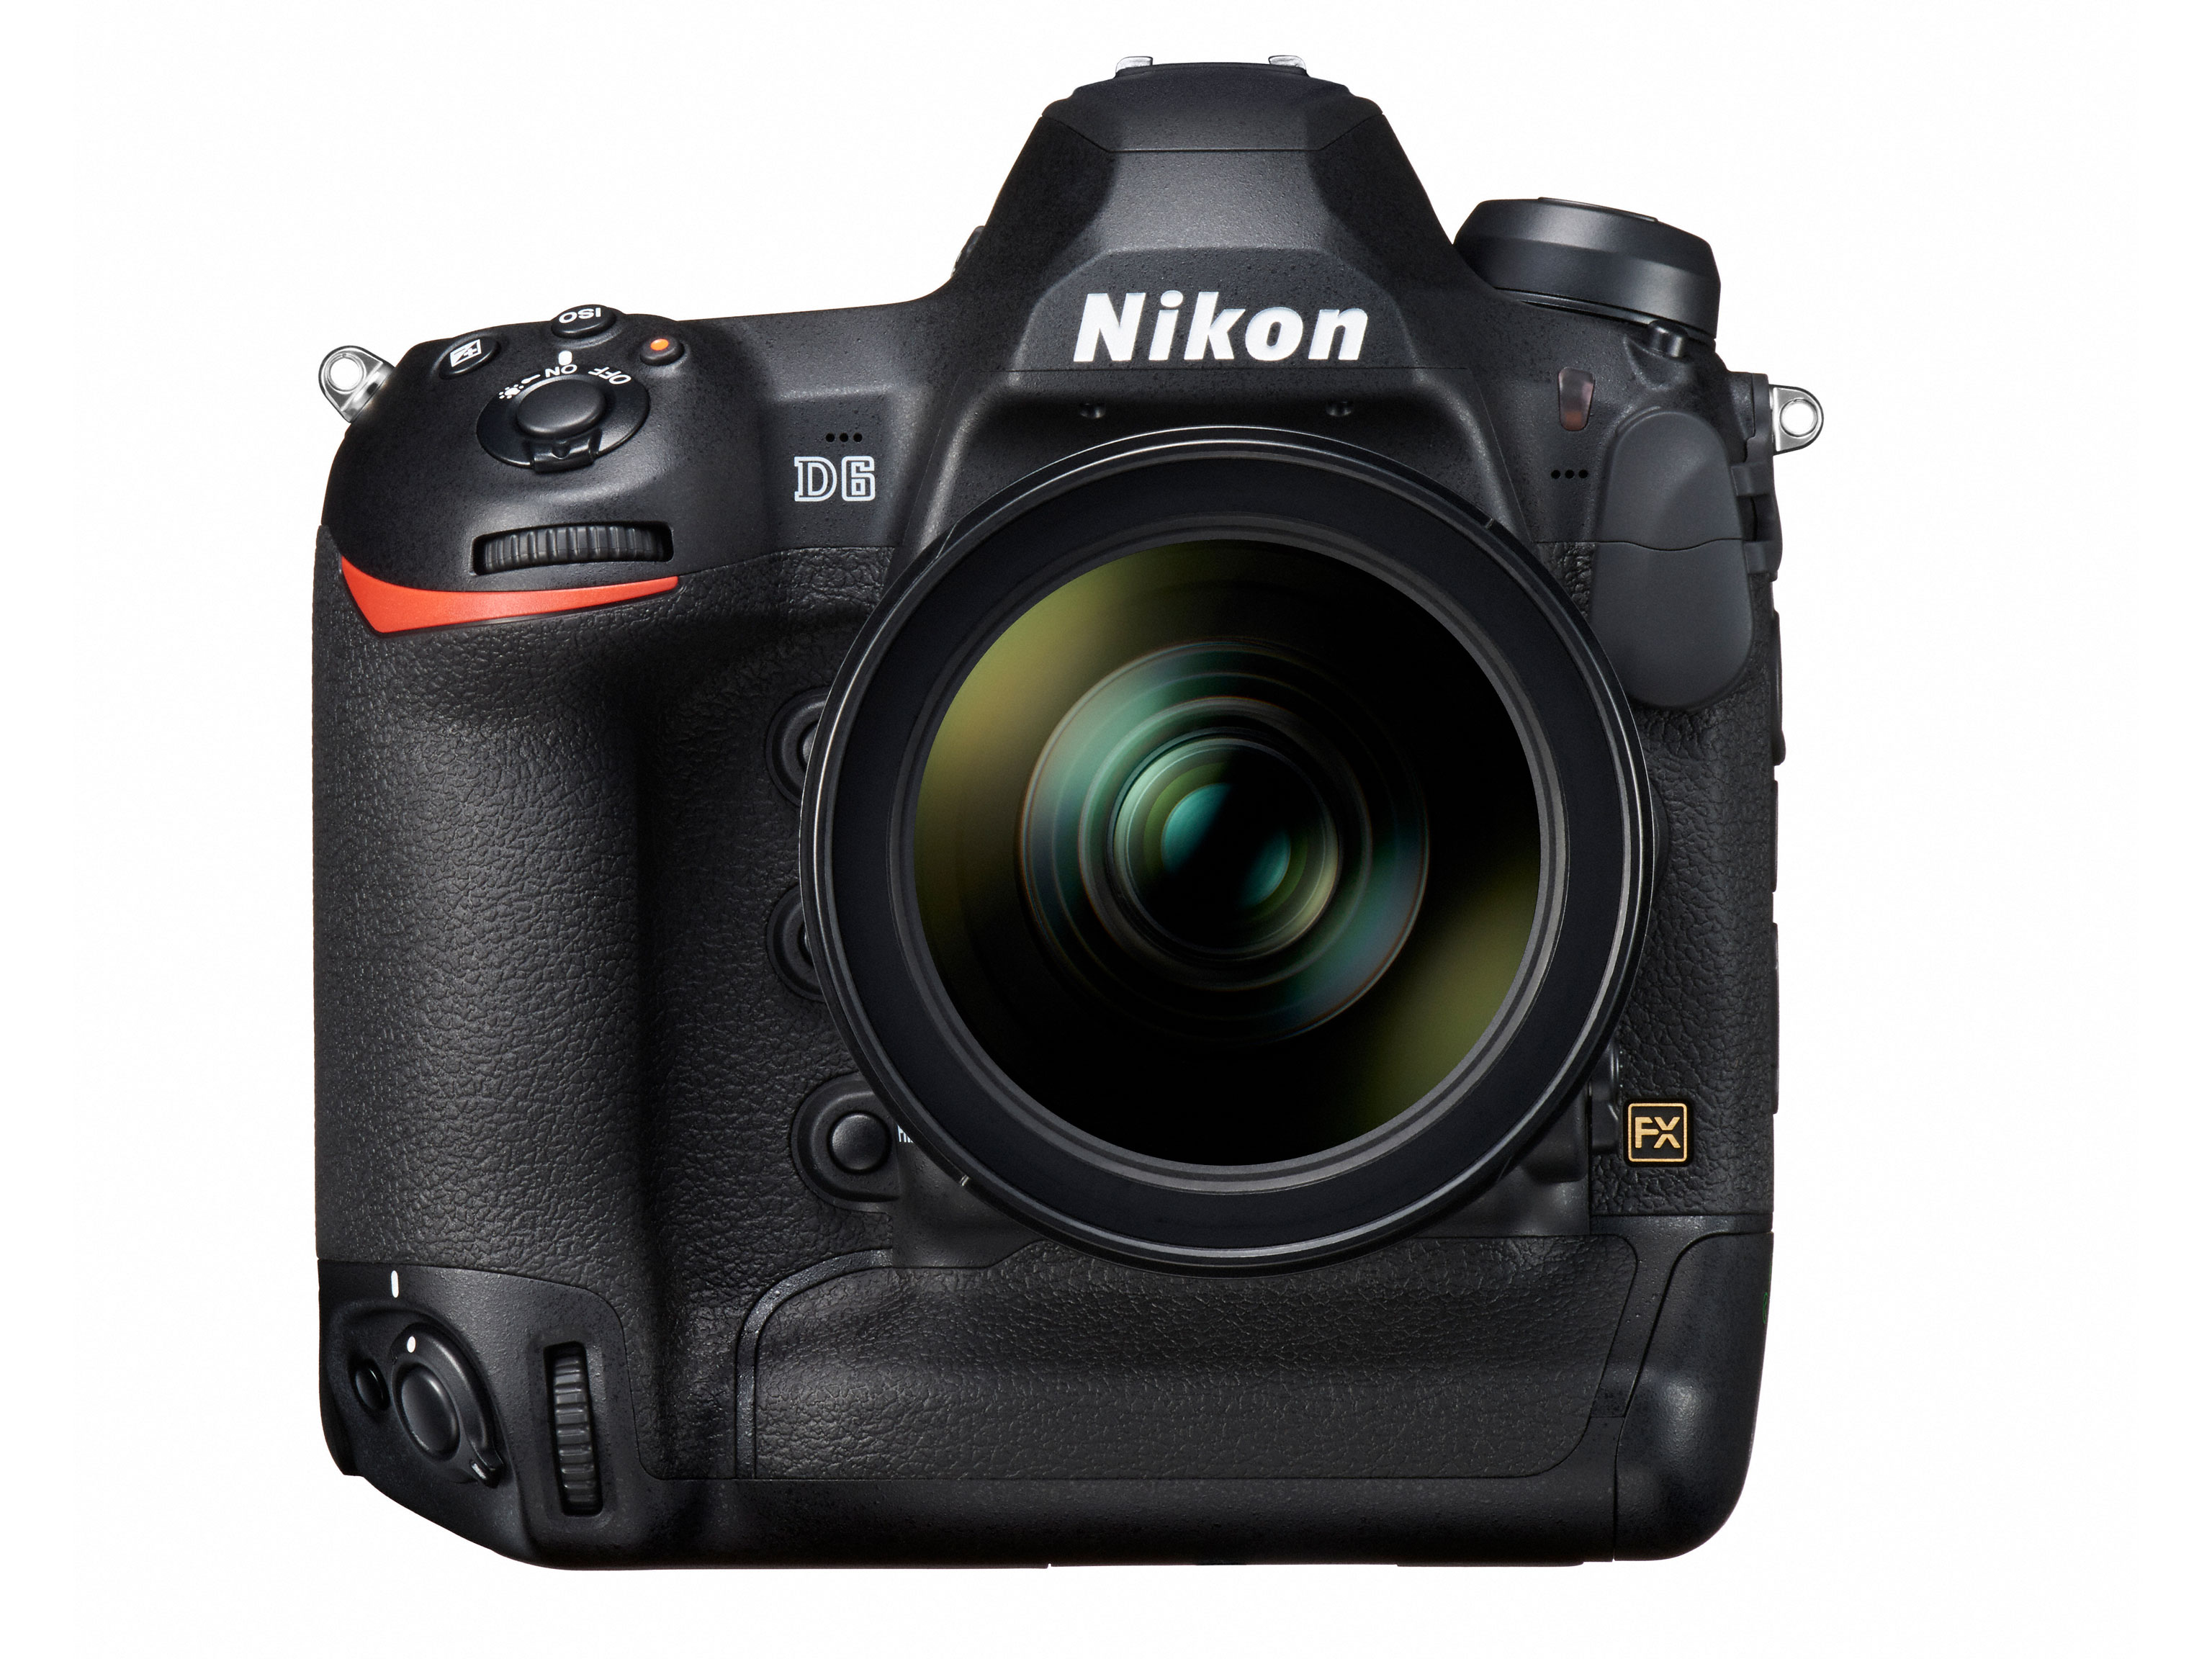 The Nikon D6: Here are the official specifications and image samples